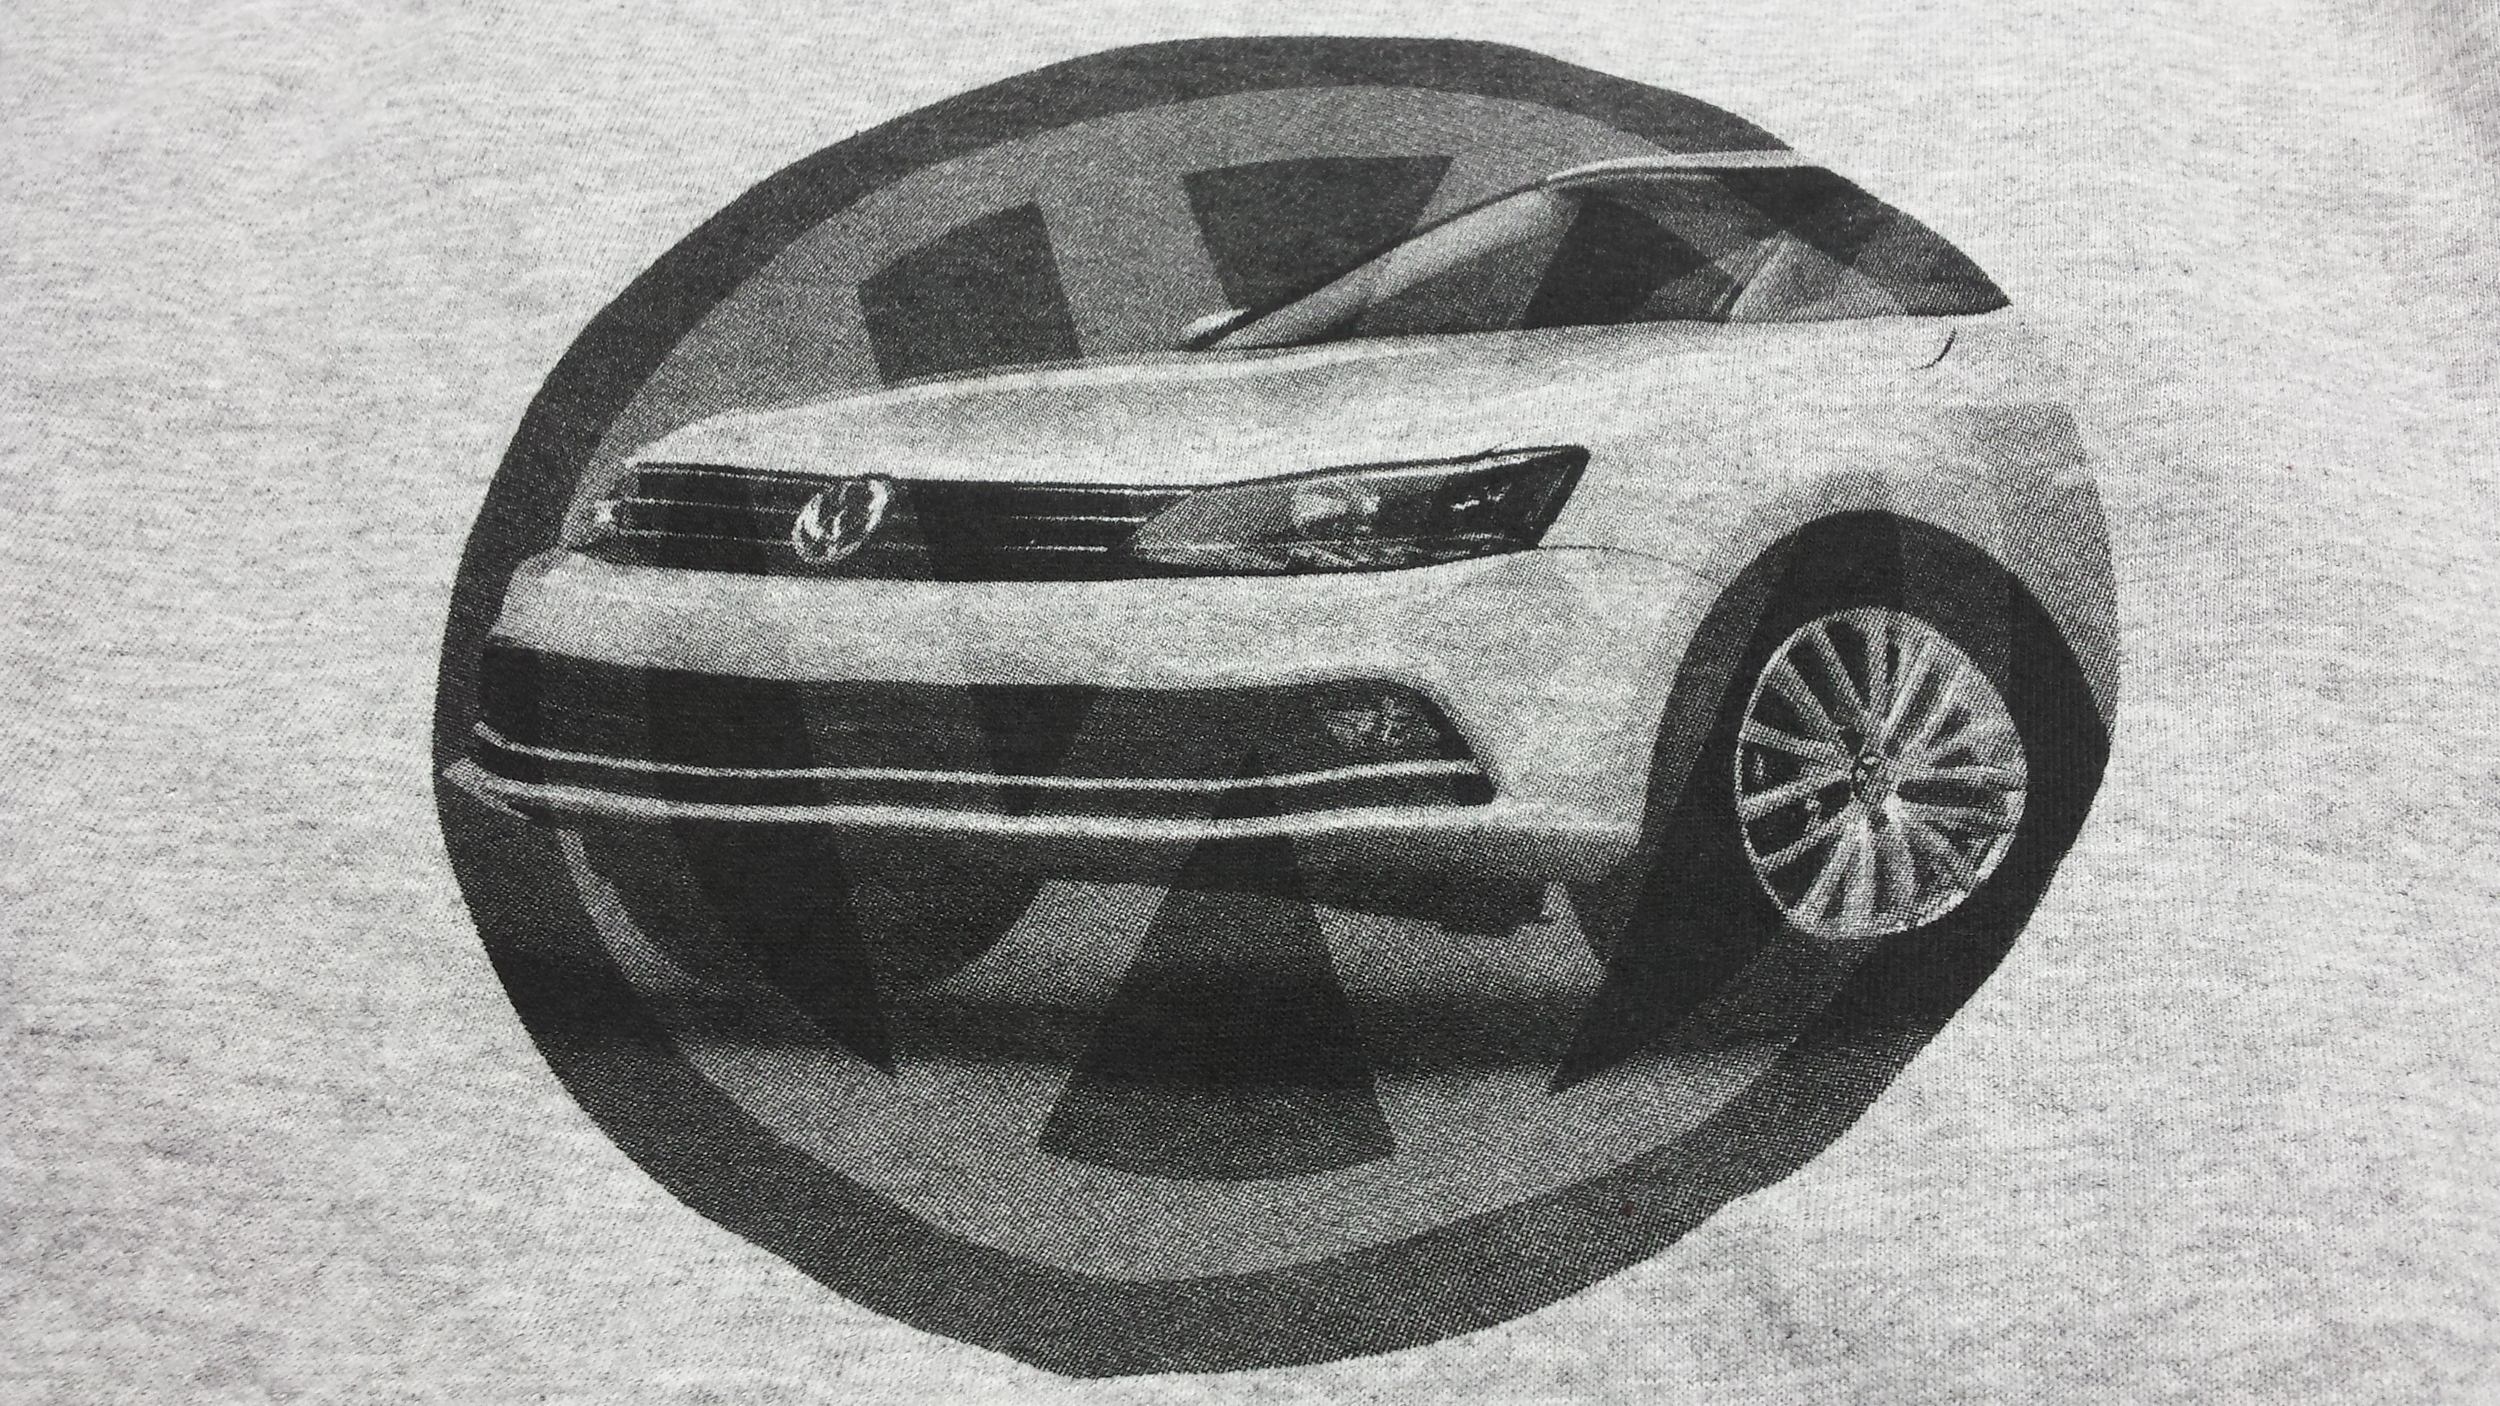 VW Jetta print done by Twin City Tees.